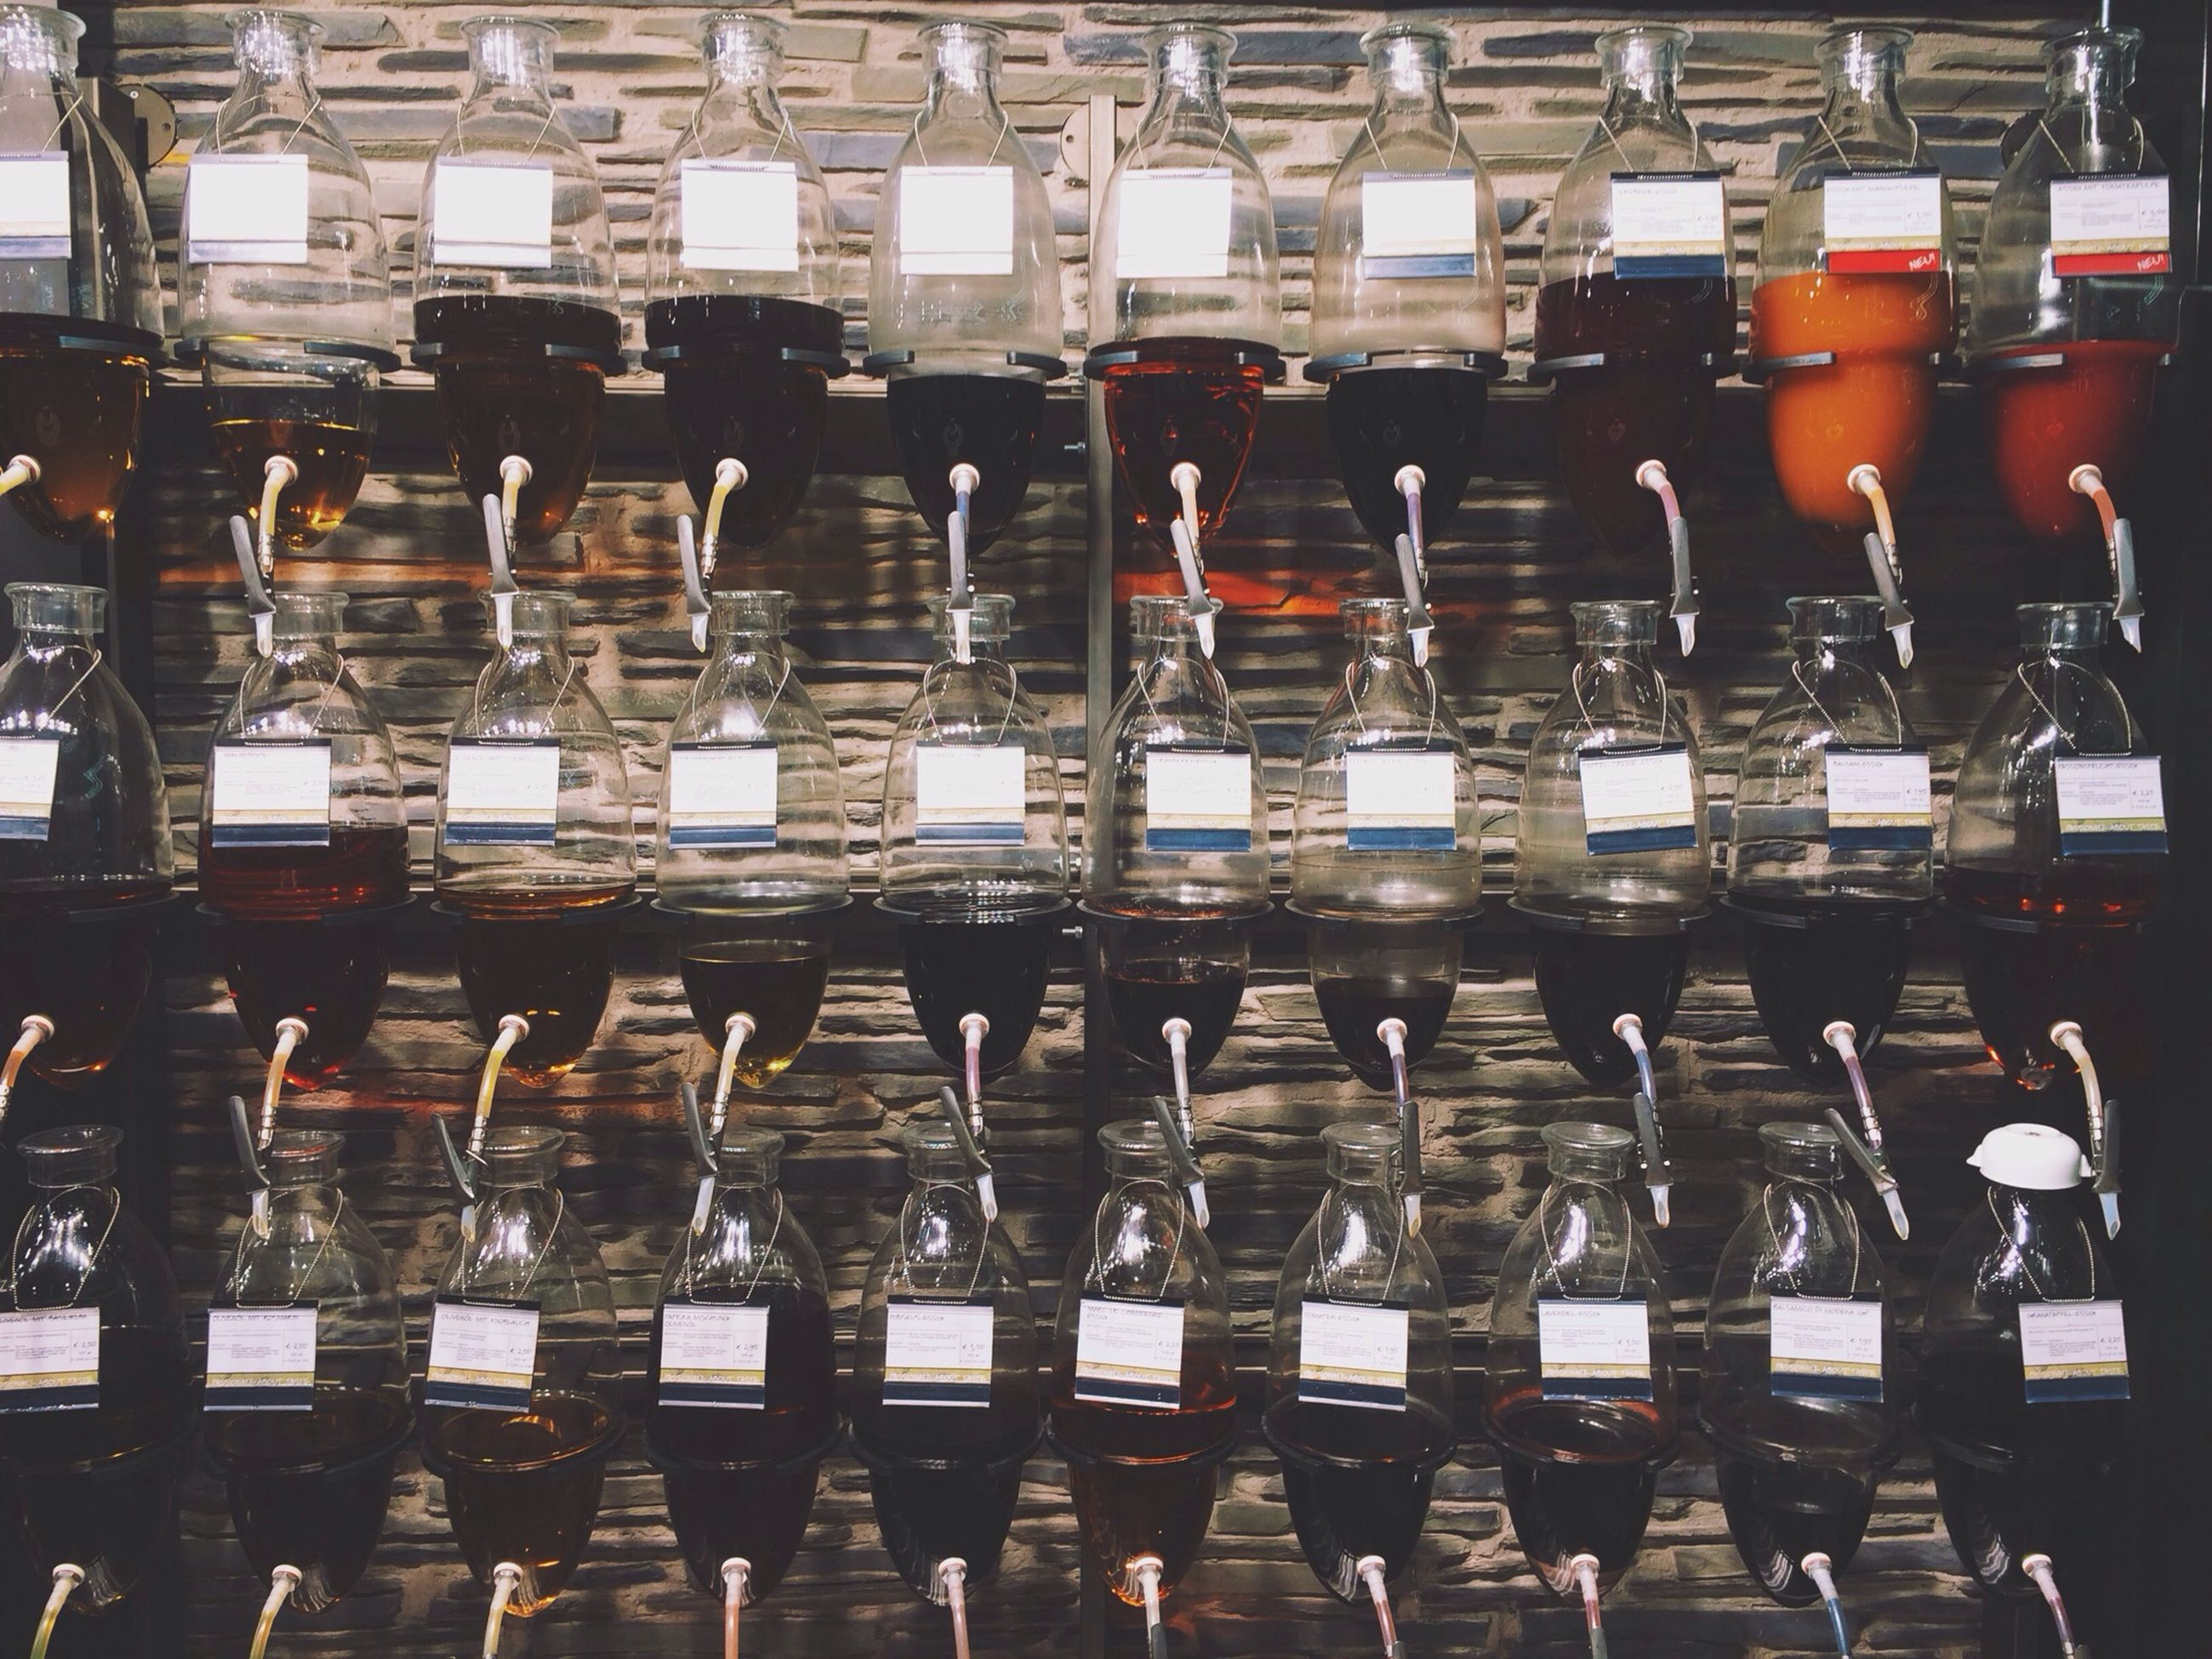 indoors, in a row, order, side by side, arrangement, large group of objects, abundance, repetition, chair, glass - material, restaurant, empty, retail, table, transparent, drink, illuminated, choice, men, food and drink